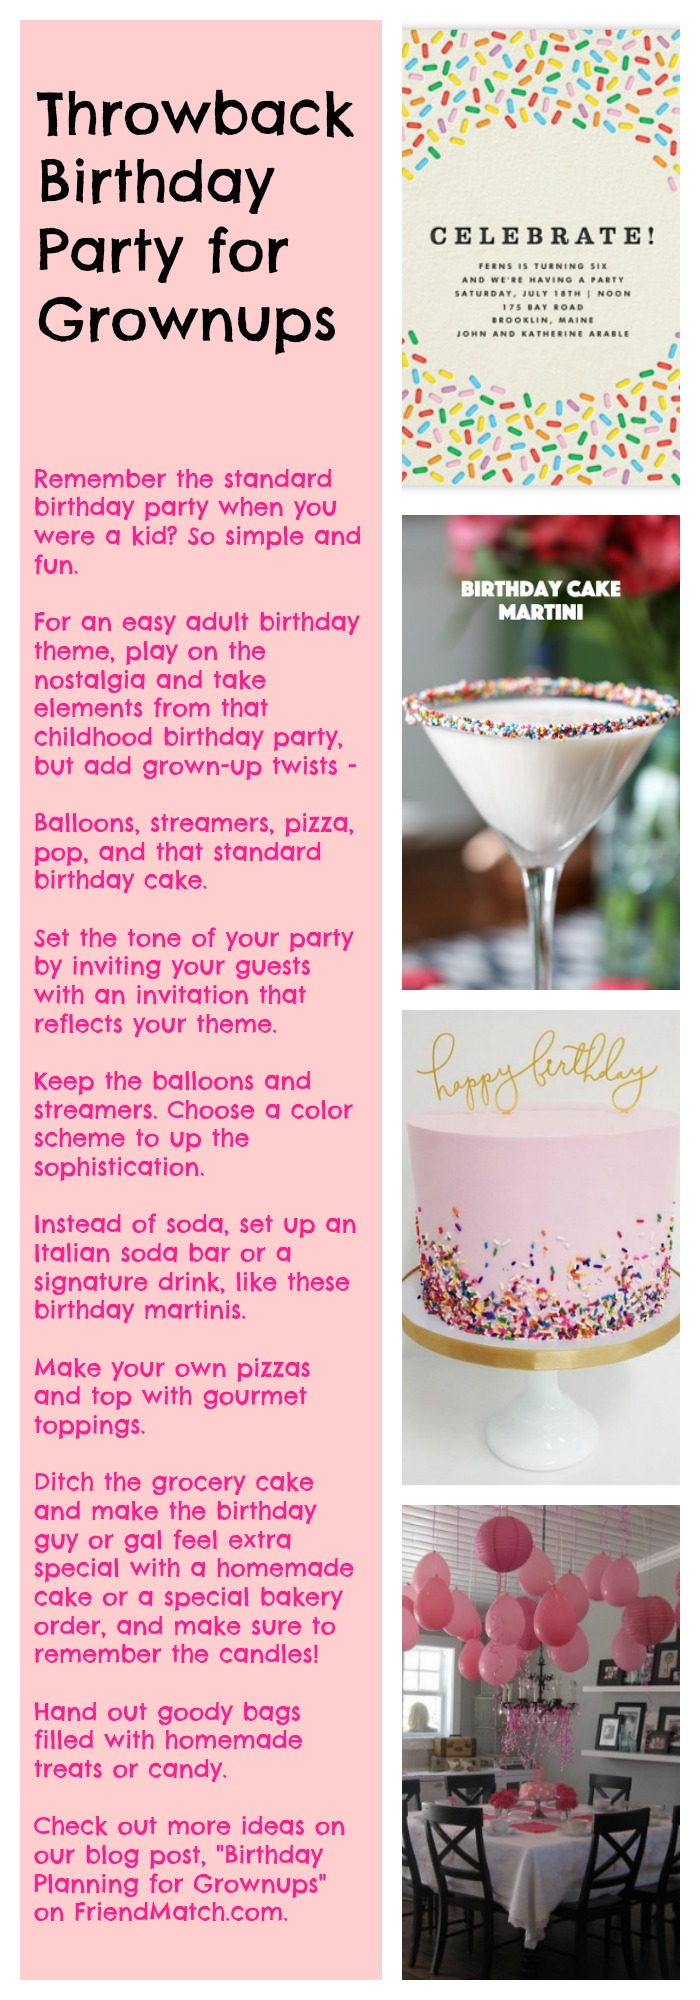 Have You Ever Celebrated With A Unique Birthday Party